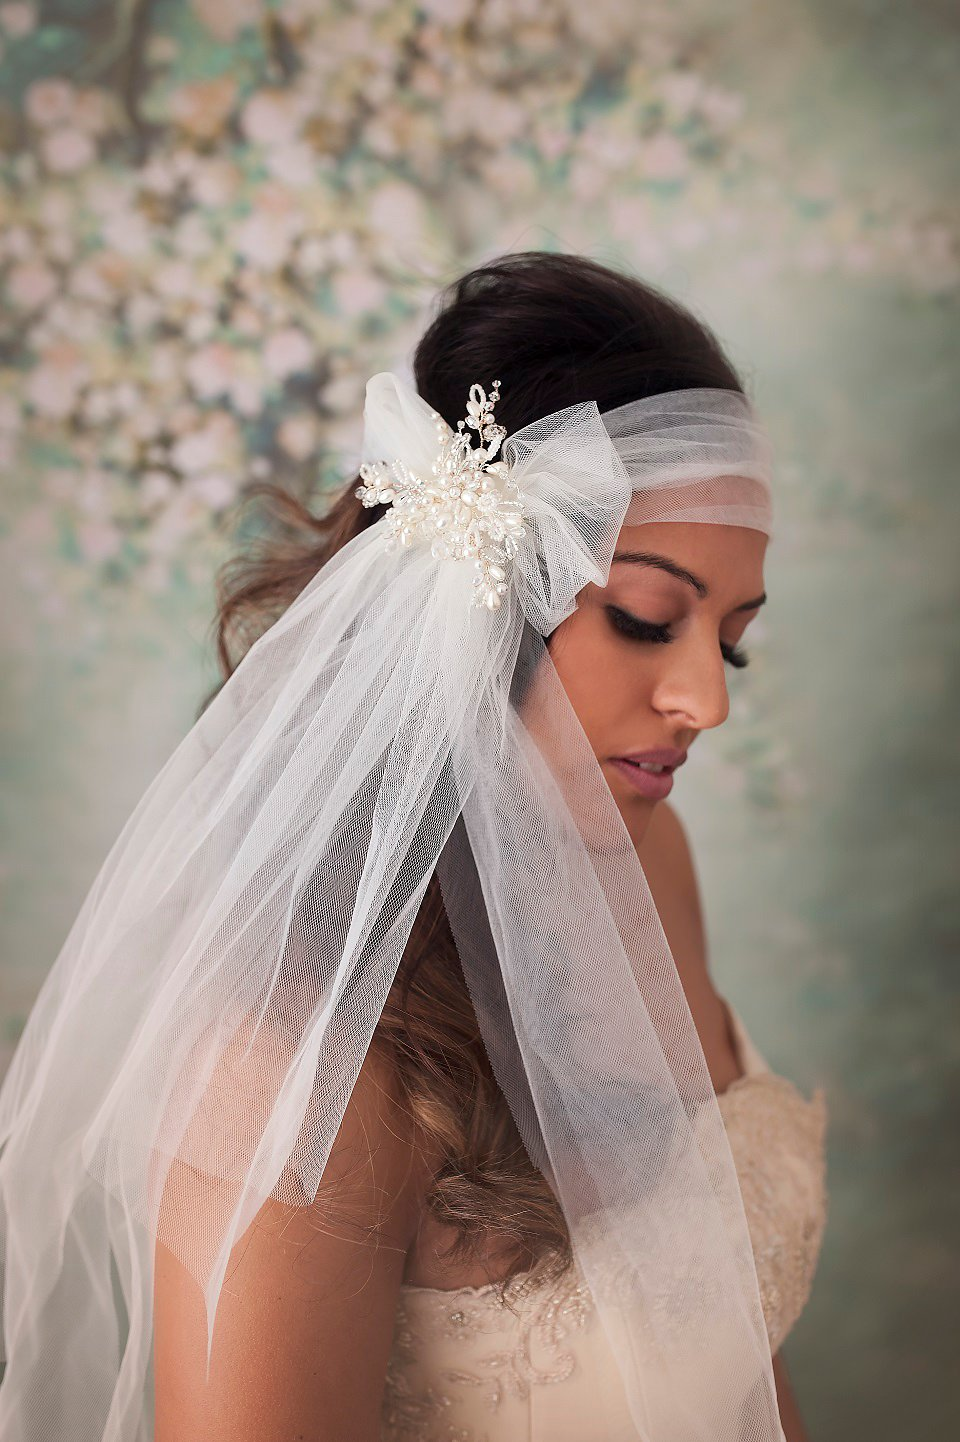 Introducing Mimosa Couture Bridal Accessories – Modern, Versatile & Romantic Wedding Headpieces